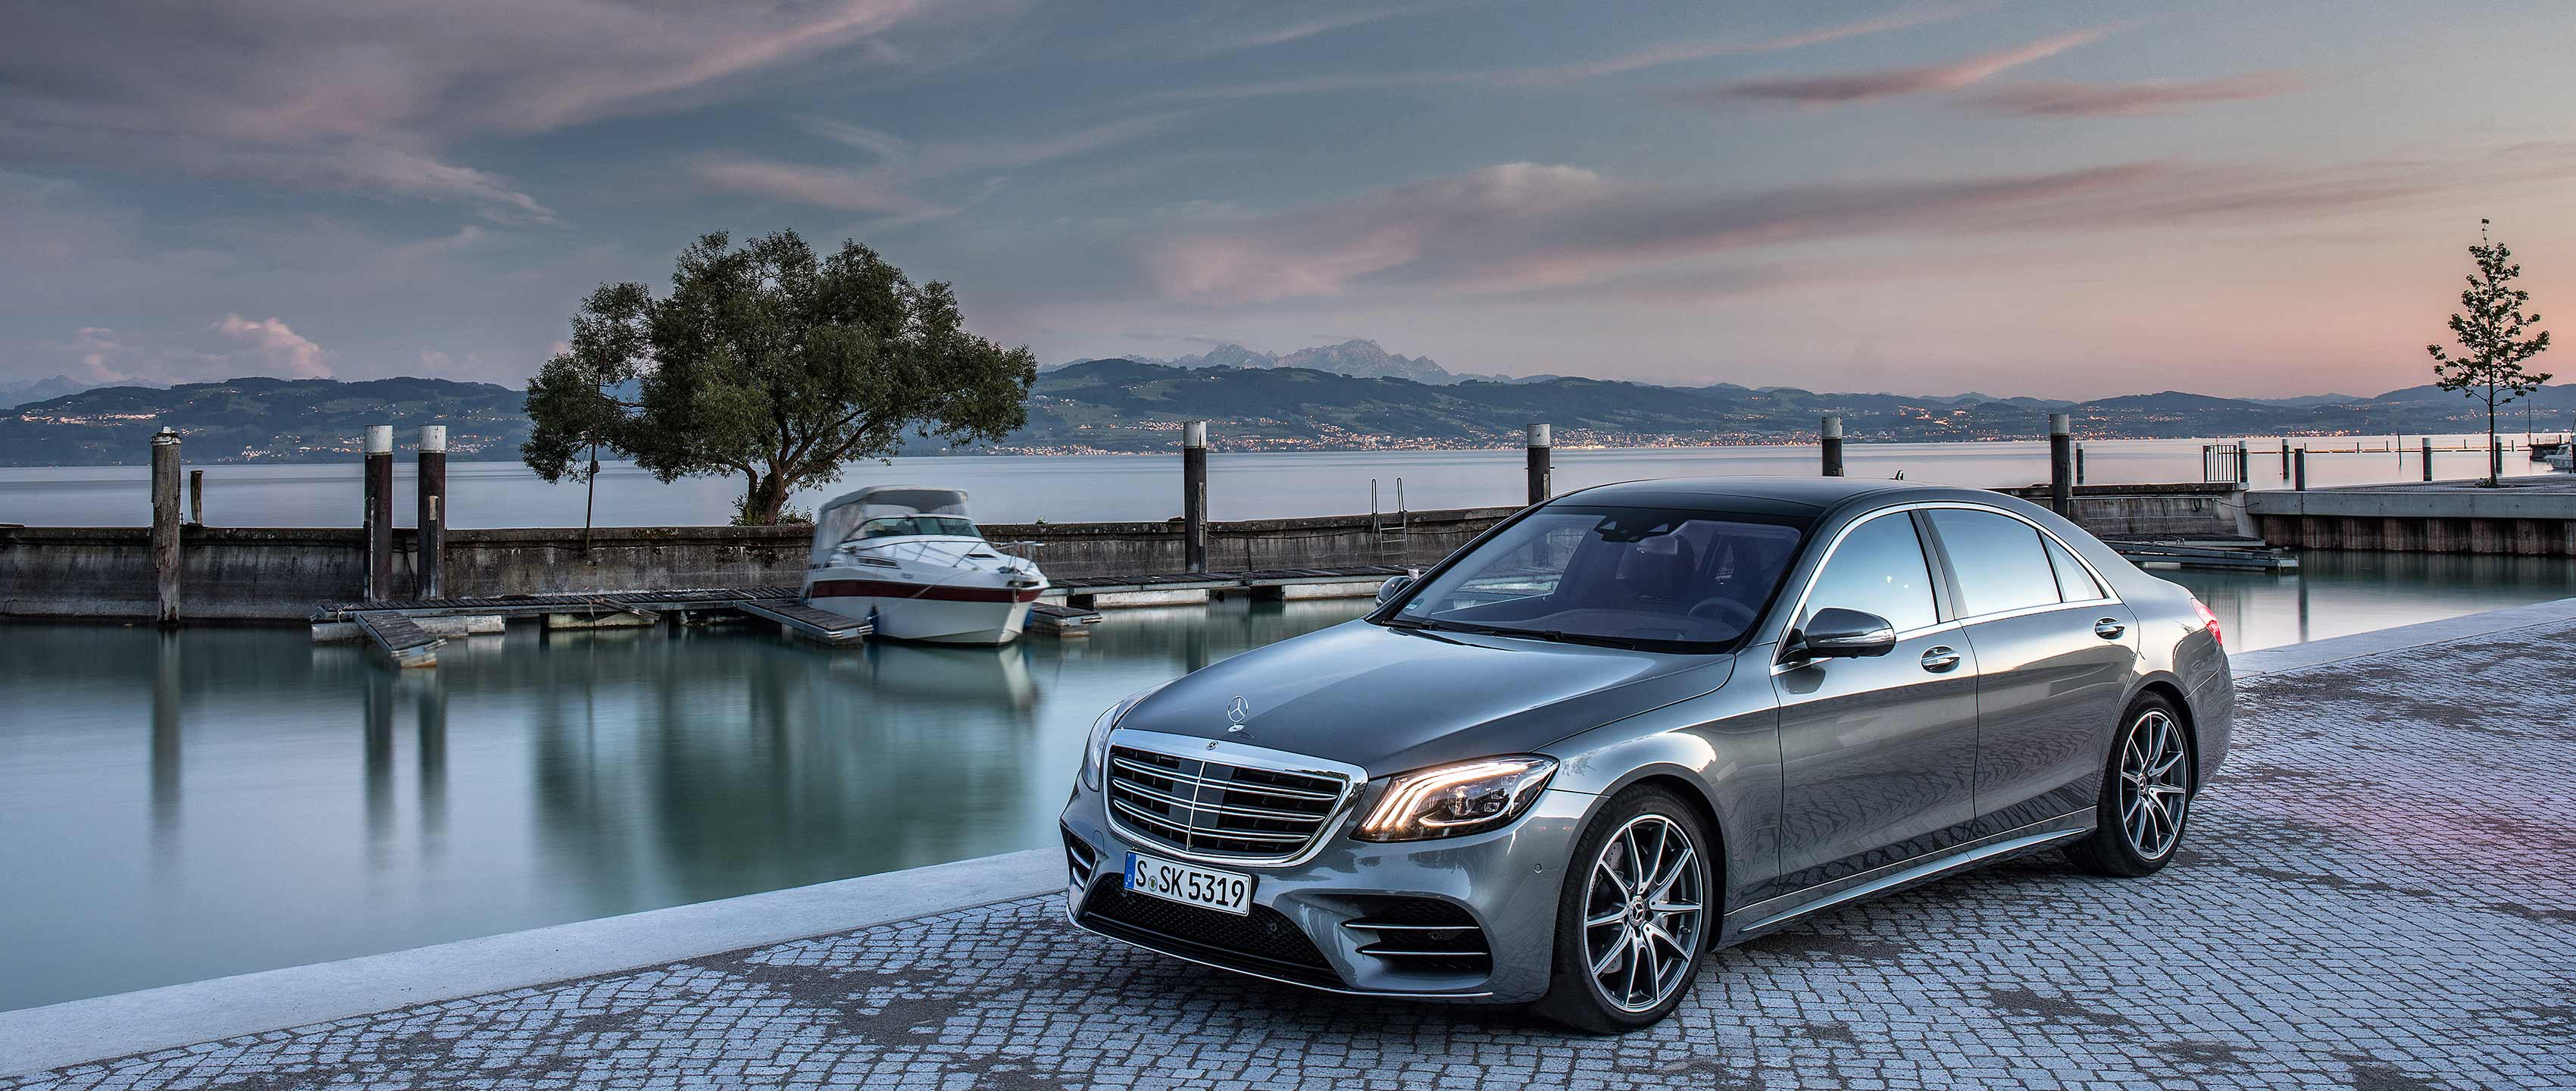 mercedes-benz-vehicles-s-class-w-222-s-500-selenite-grey-metallic-3400x1440